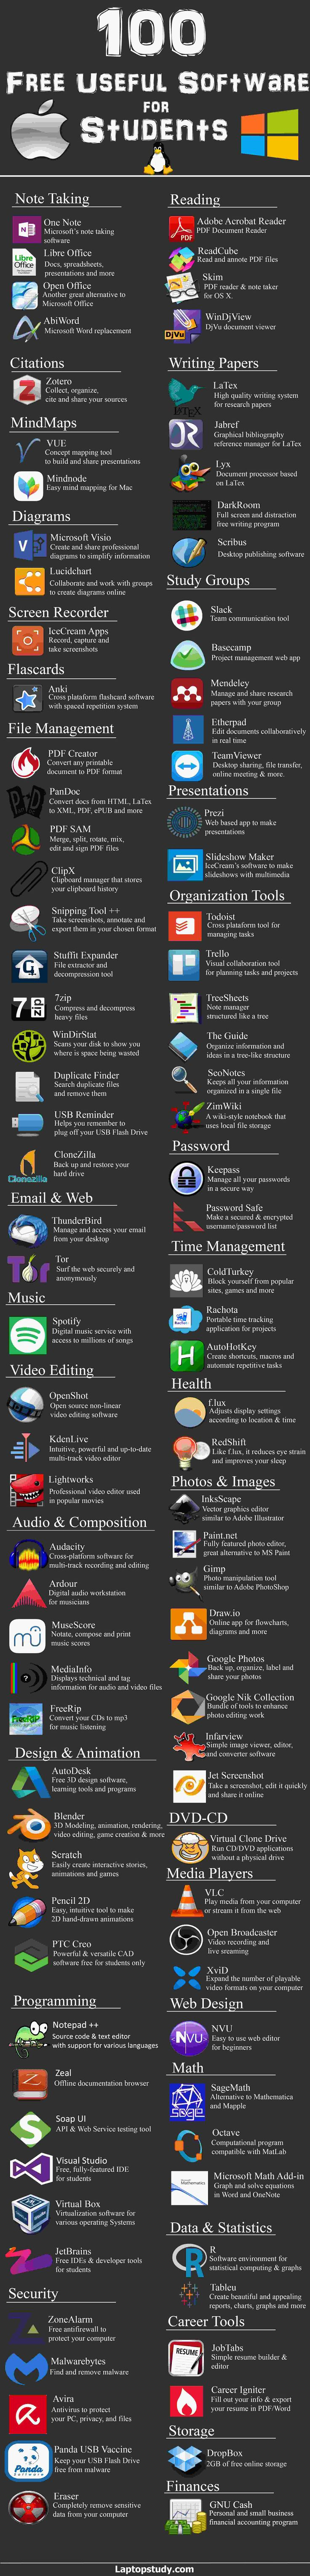 Creative Learning: The internet's biggest and most complete list of free software for all students. Whether you are in the arts & humanities, liberal arts & sciences, engineering, architecture or any other major you should find it useful for your studies and for your budget too.